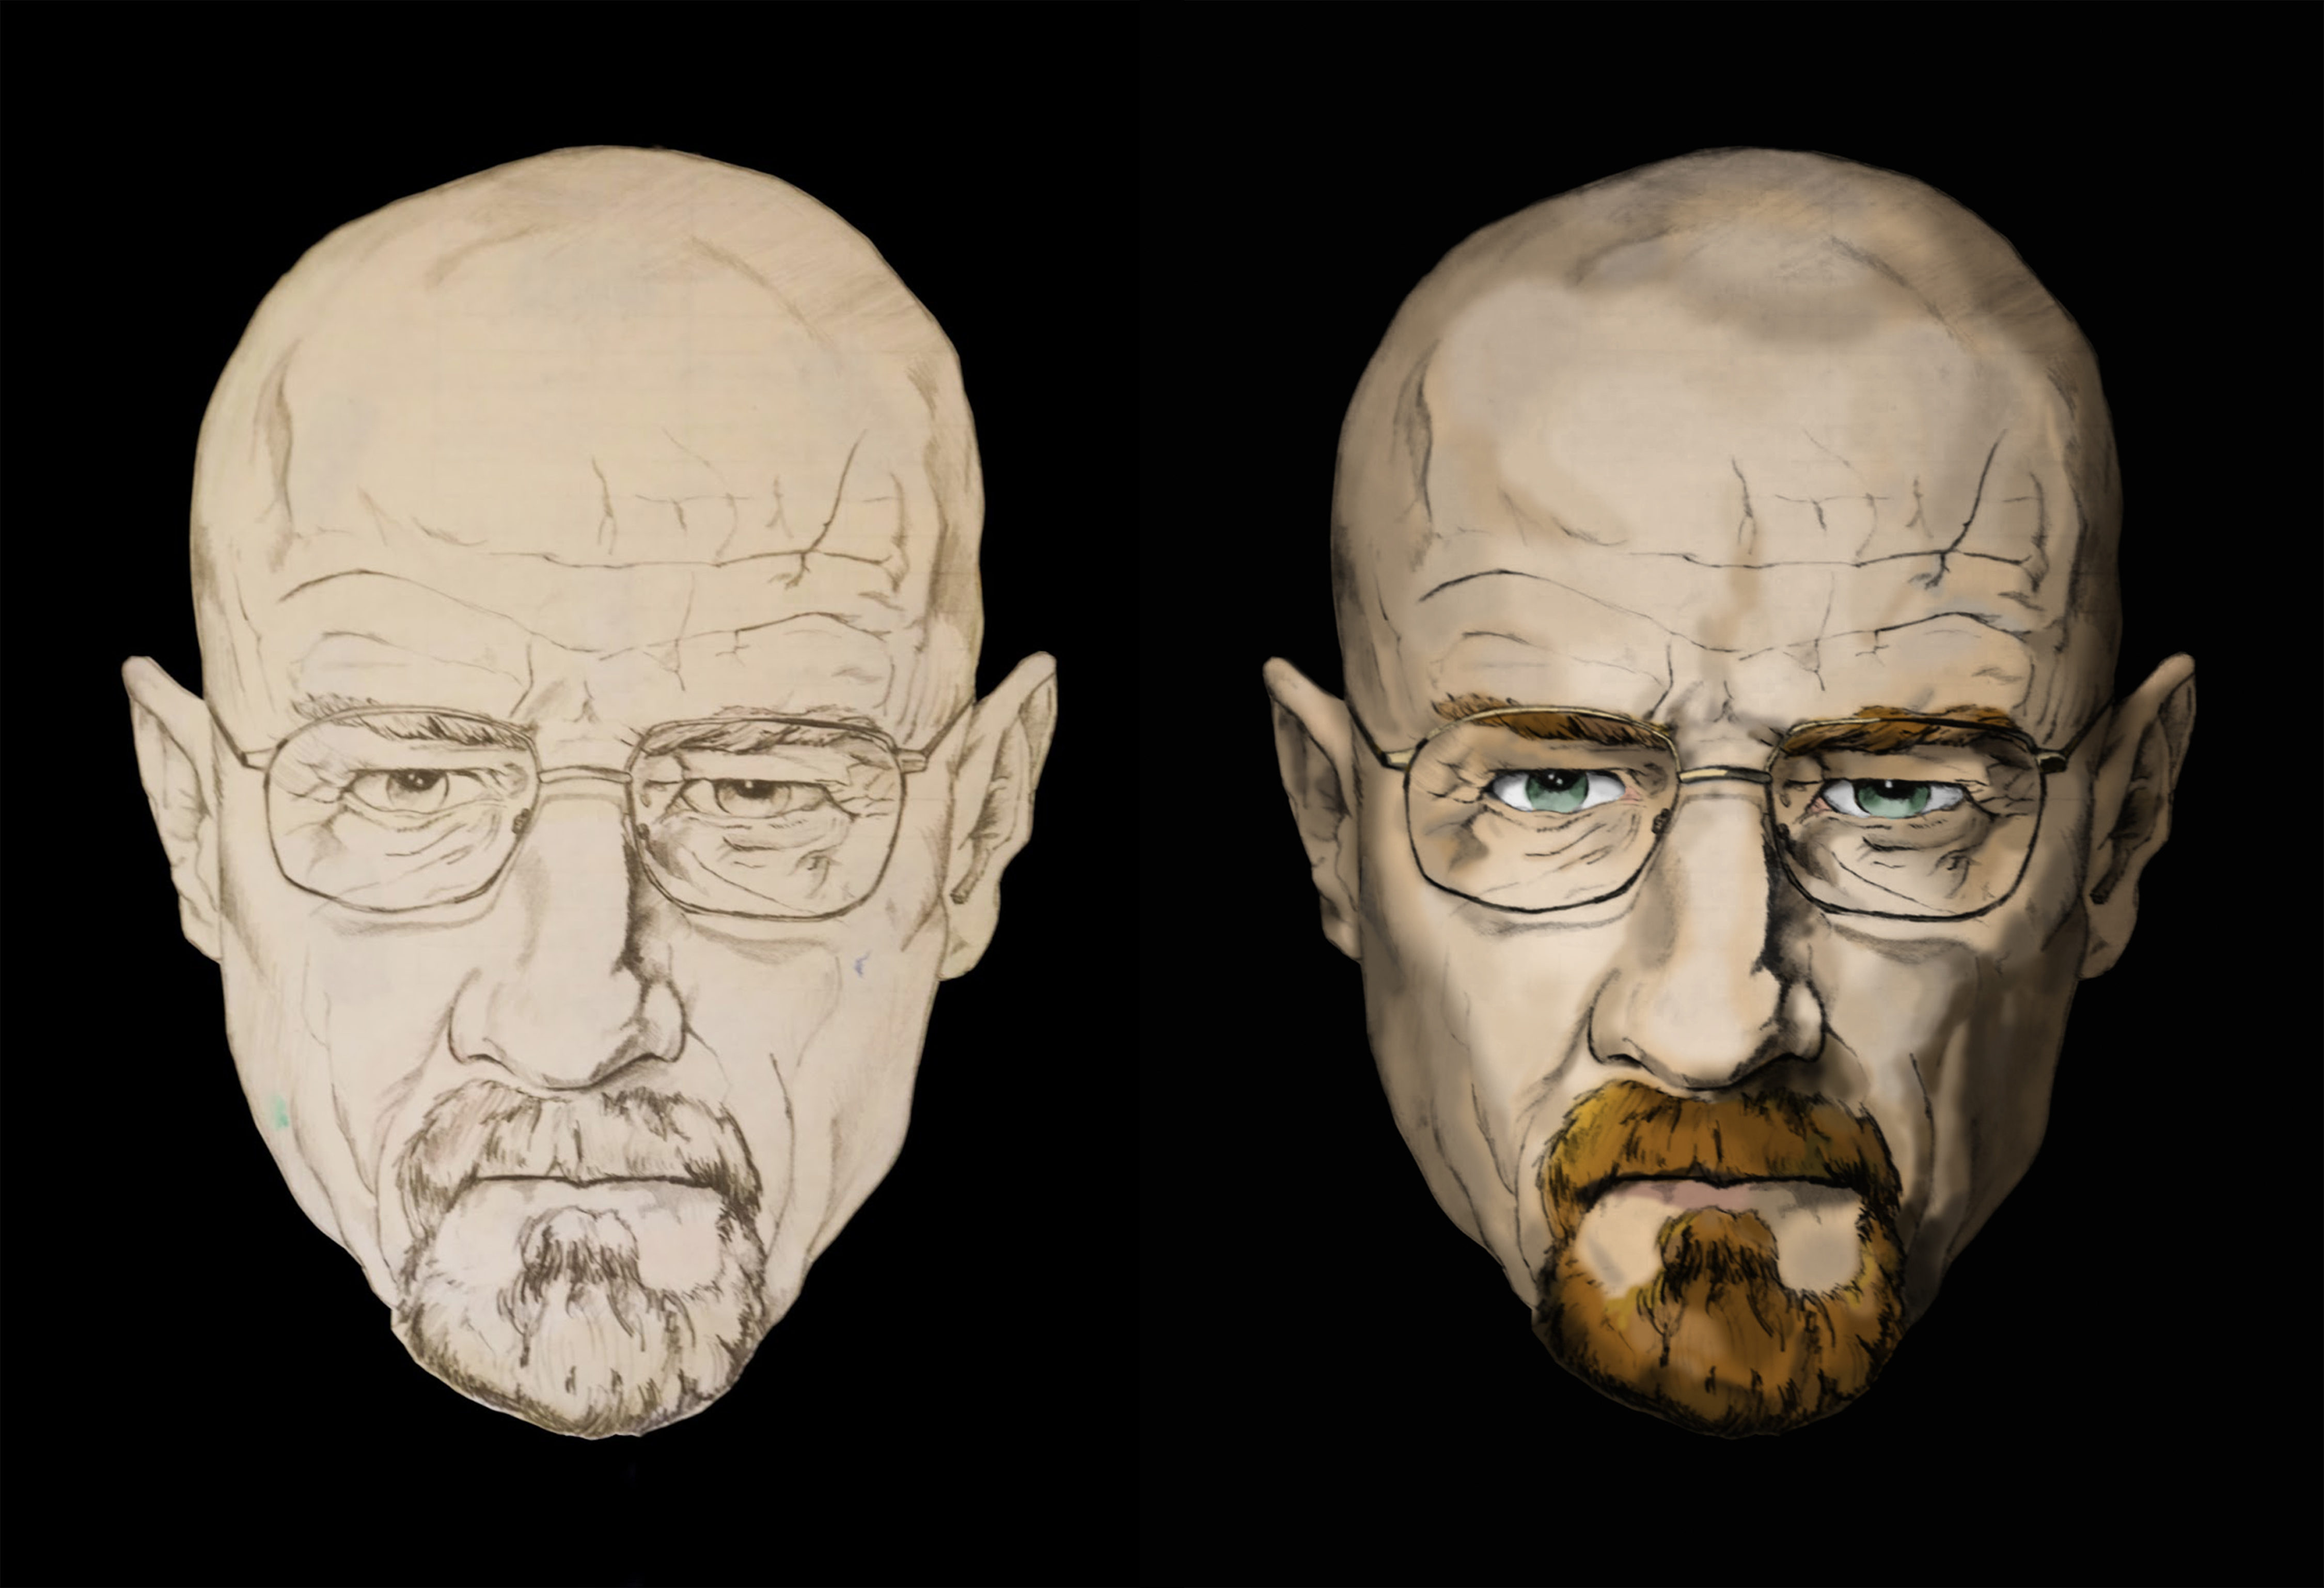 A painting of Walter White.